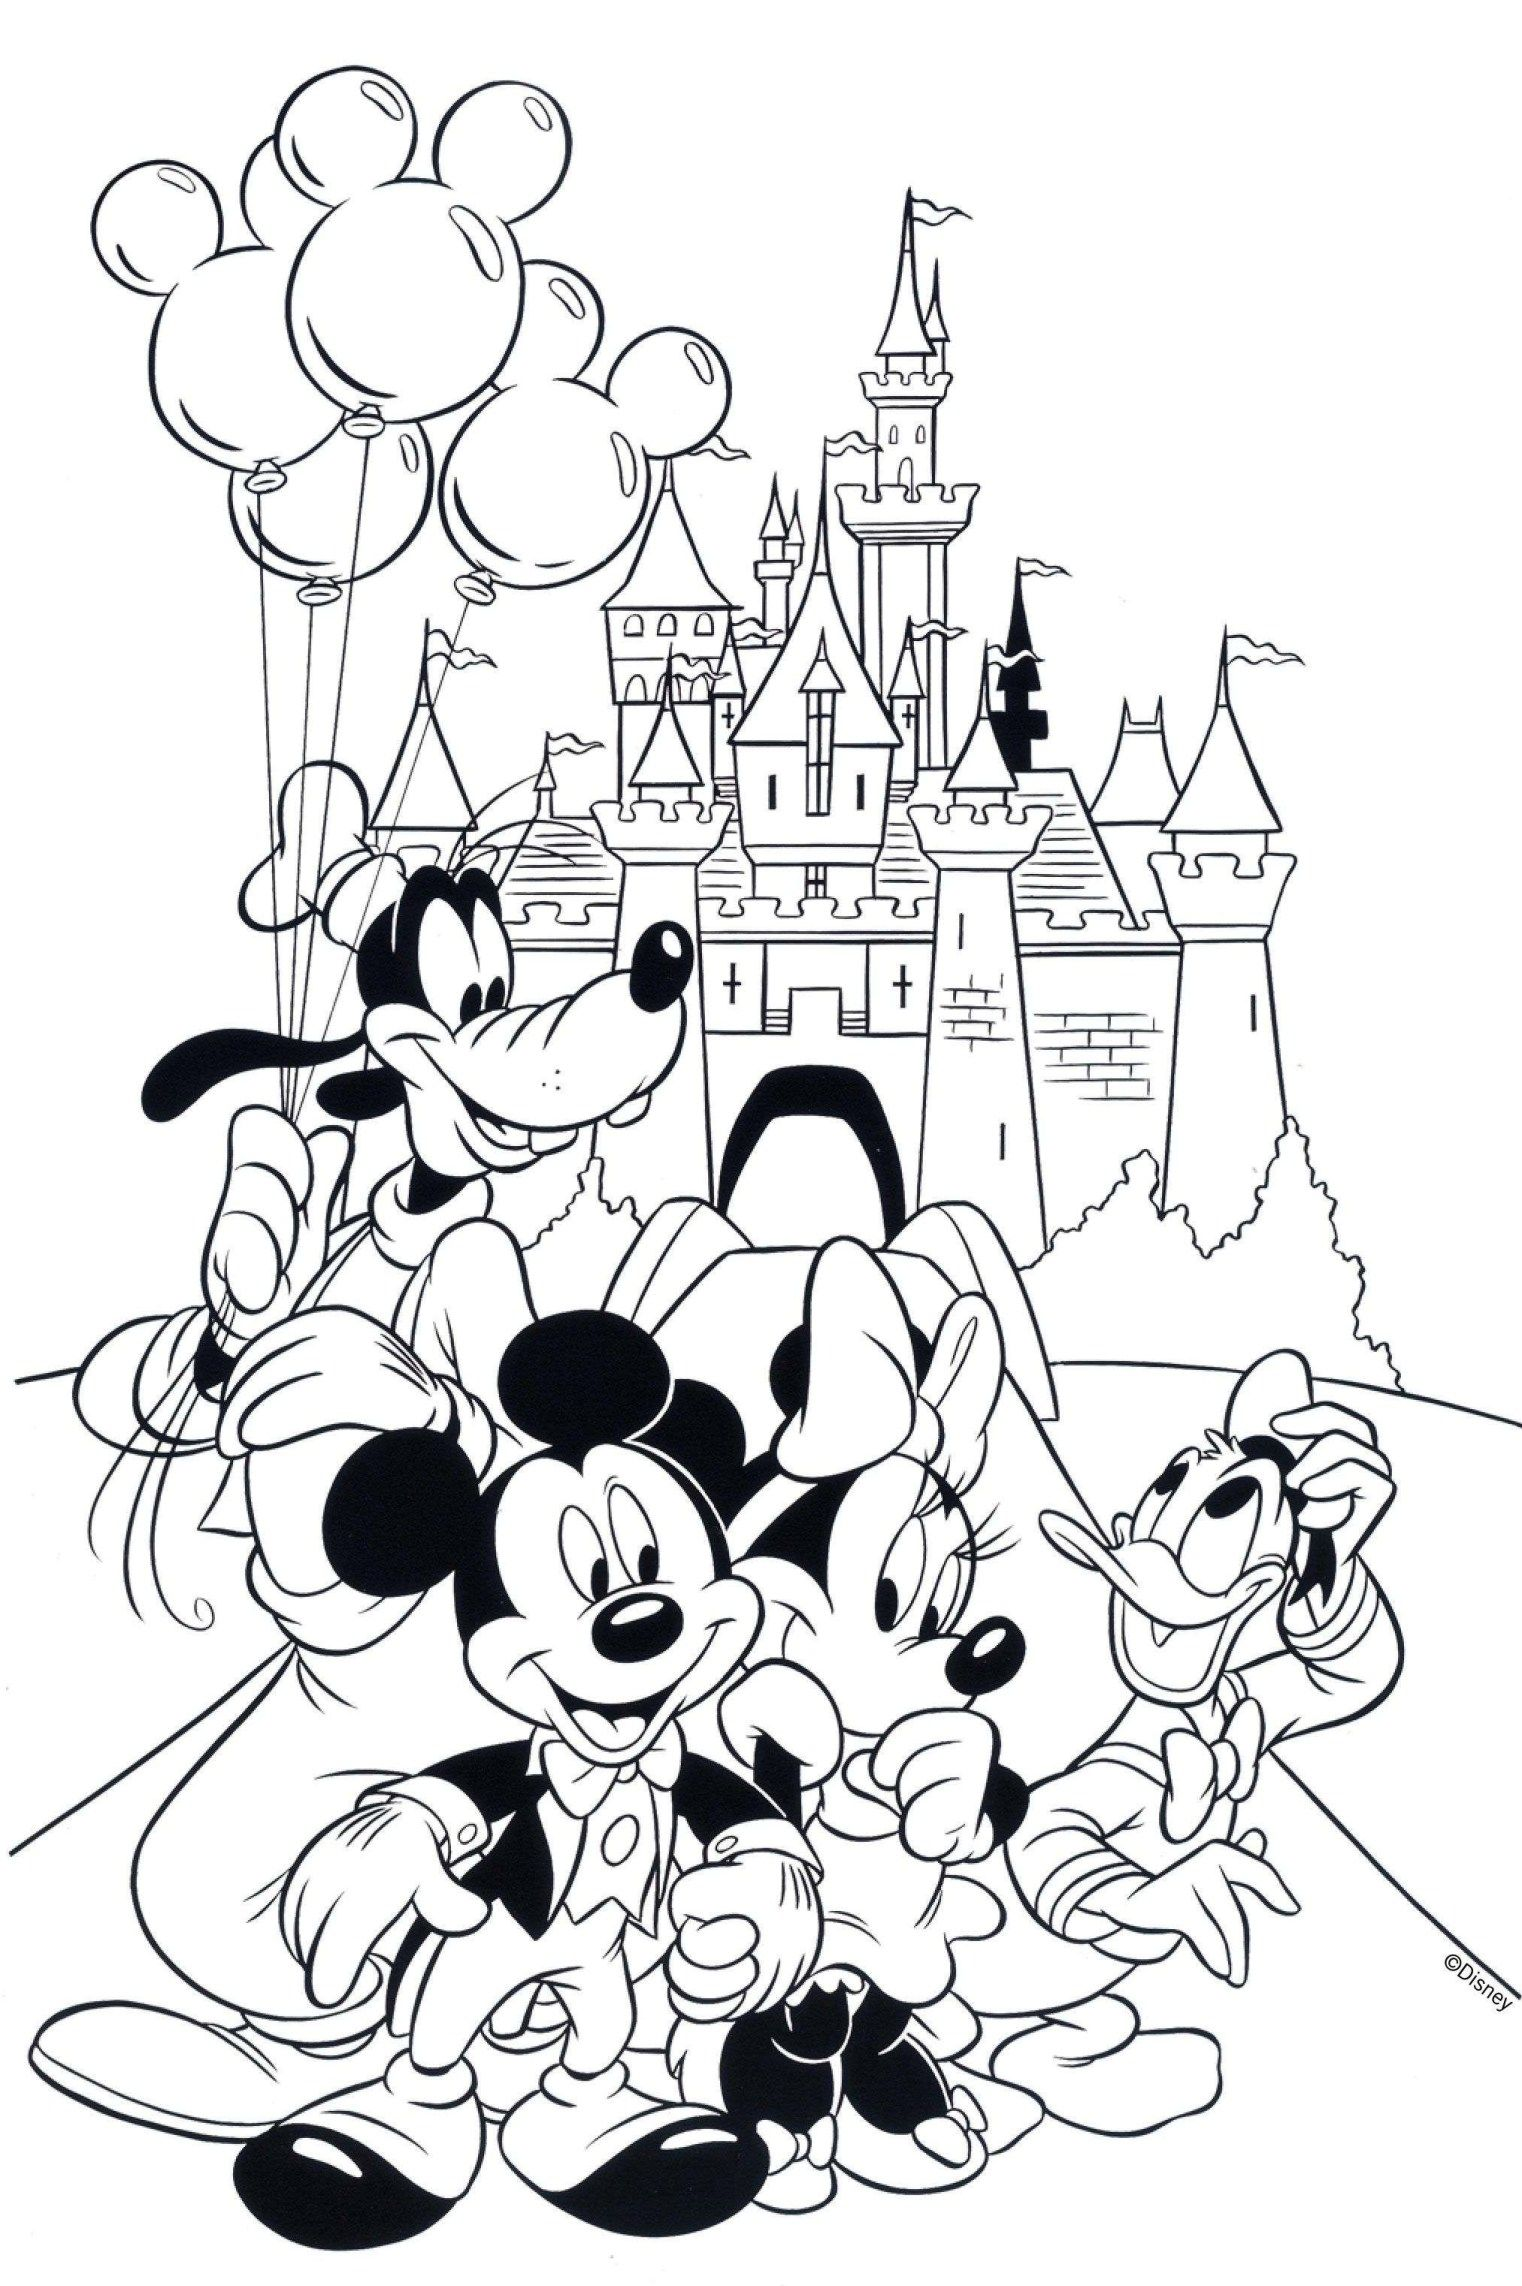 Free Printable Mickey Mouse Coloring Pages For Kids Mickey Coloring Pages Minnie Mouse Coloring Pages Baby Coloring Pages